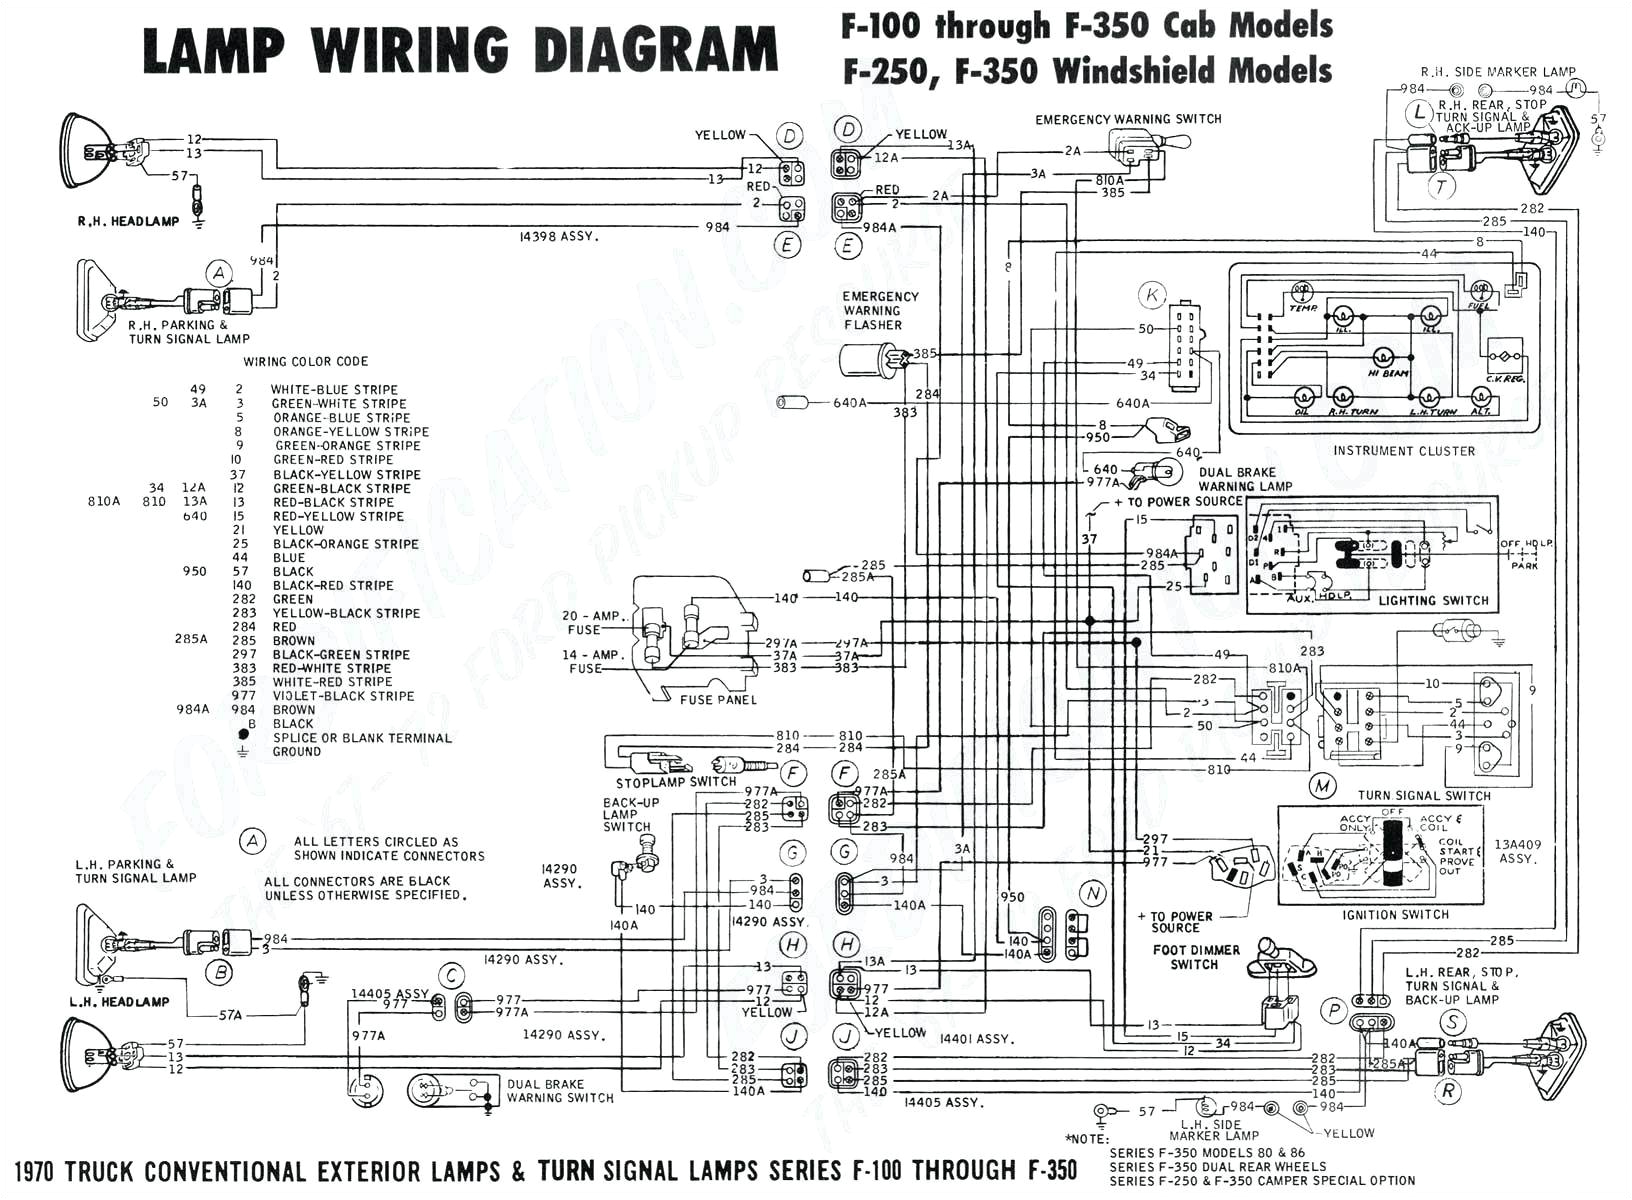 2012 ford Fiesta Wiring Diagram 2012 ford F 350 Tail Light Wiring Diagram Diagram Base